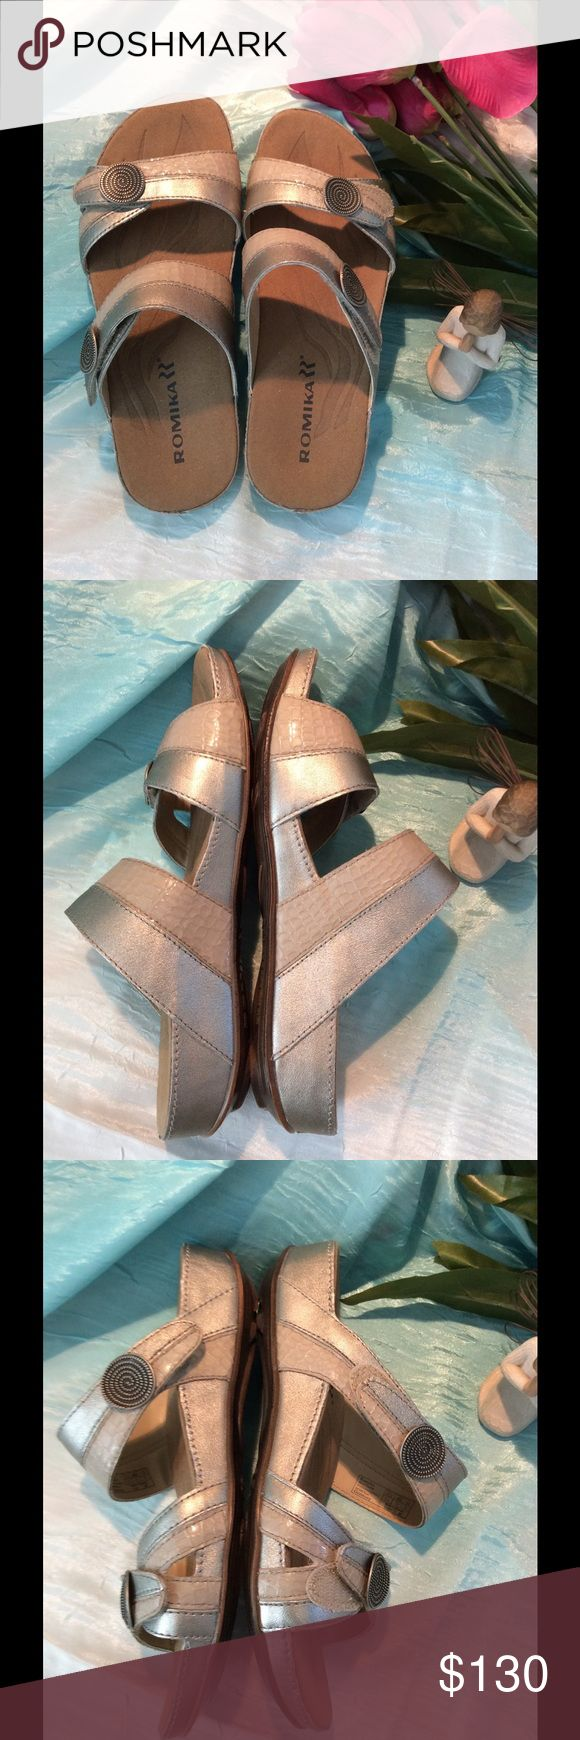 🎉🎉LABOR DAY SALE 🎉🎉🎀Firm🎀 Fidschi 22' Sandal Size EU 37 or USA 7 Brand new shoes, purchased 2 weeks ago and neber worn. No box.  Textured buttons light up the subtly shaded straps of a comfy slip-on sandal with a contoured footbed. Adjustable straps with hook-and-loop closure. Leather, suede and textile upper/synthetic lining/polyurethane sole. By Romika Romika Shoes Sandals